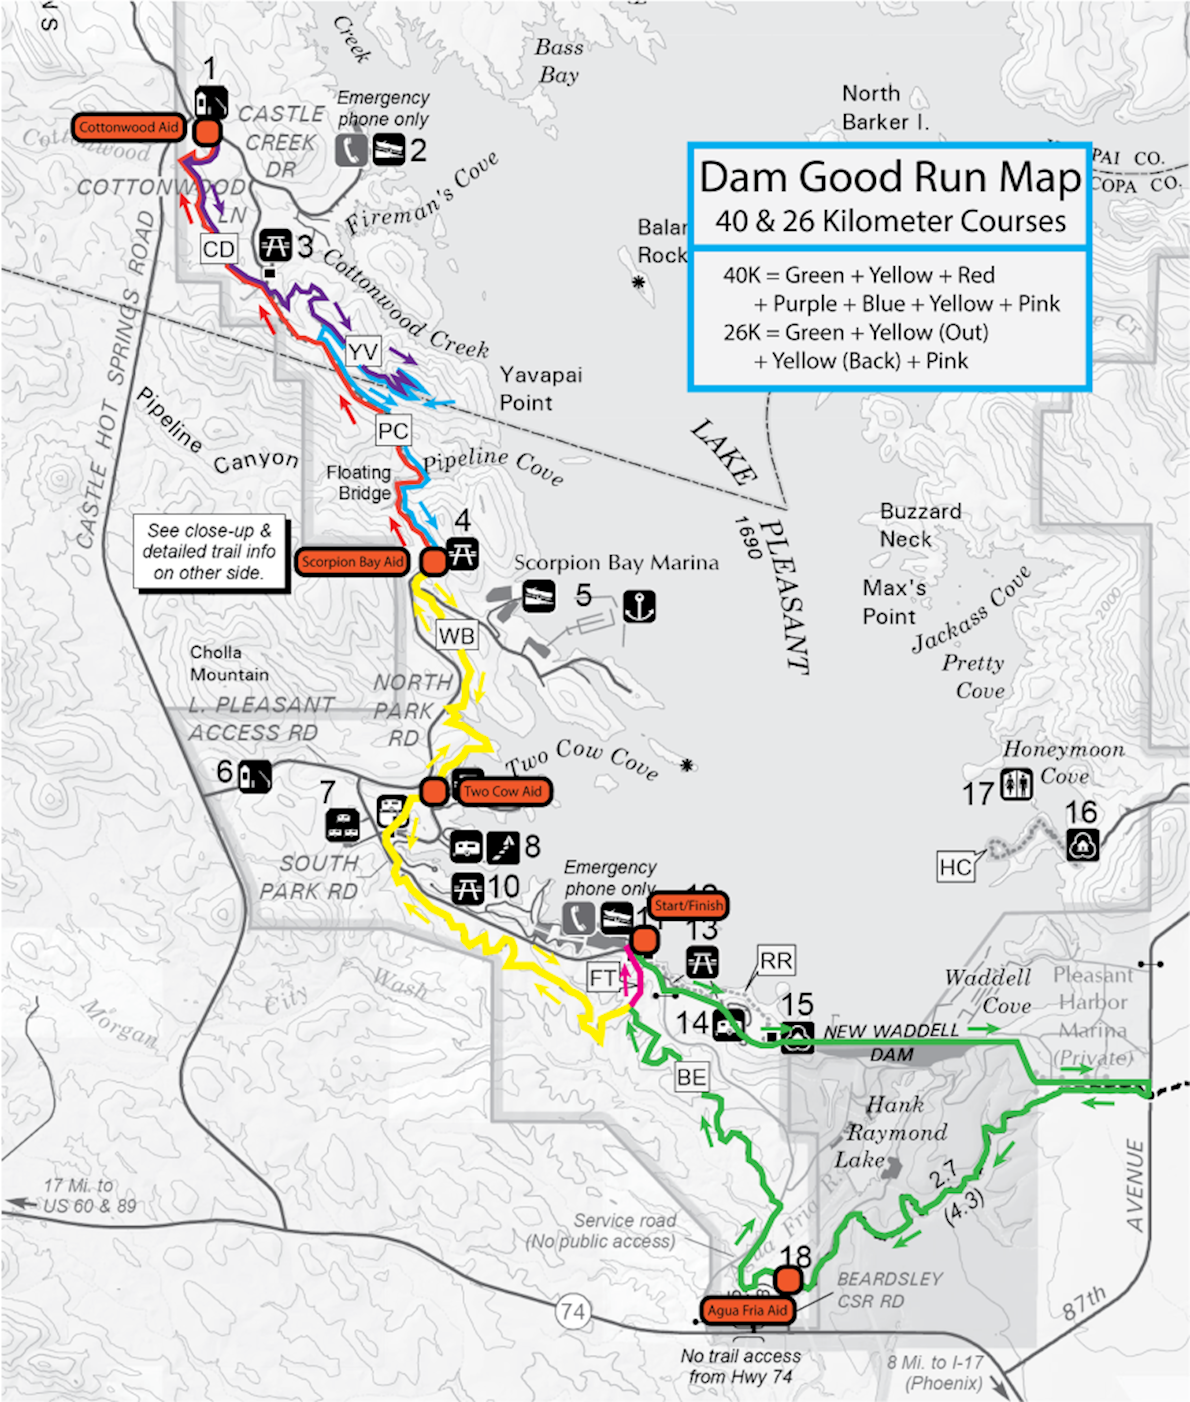 Dam Good Run Route Map